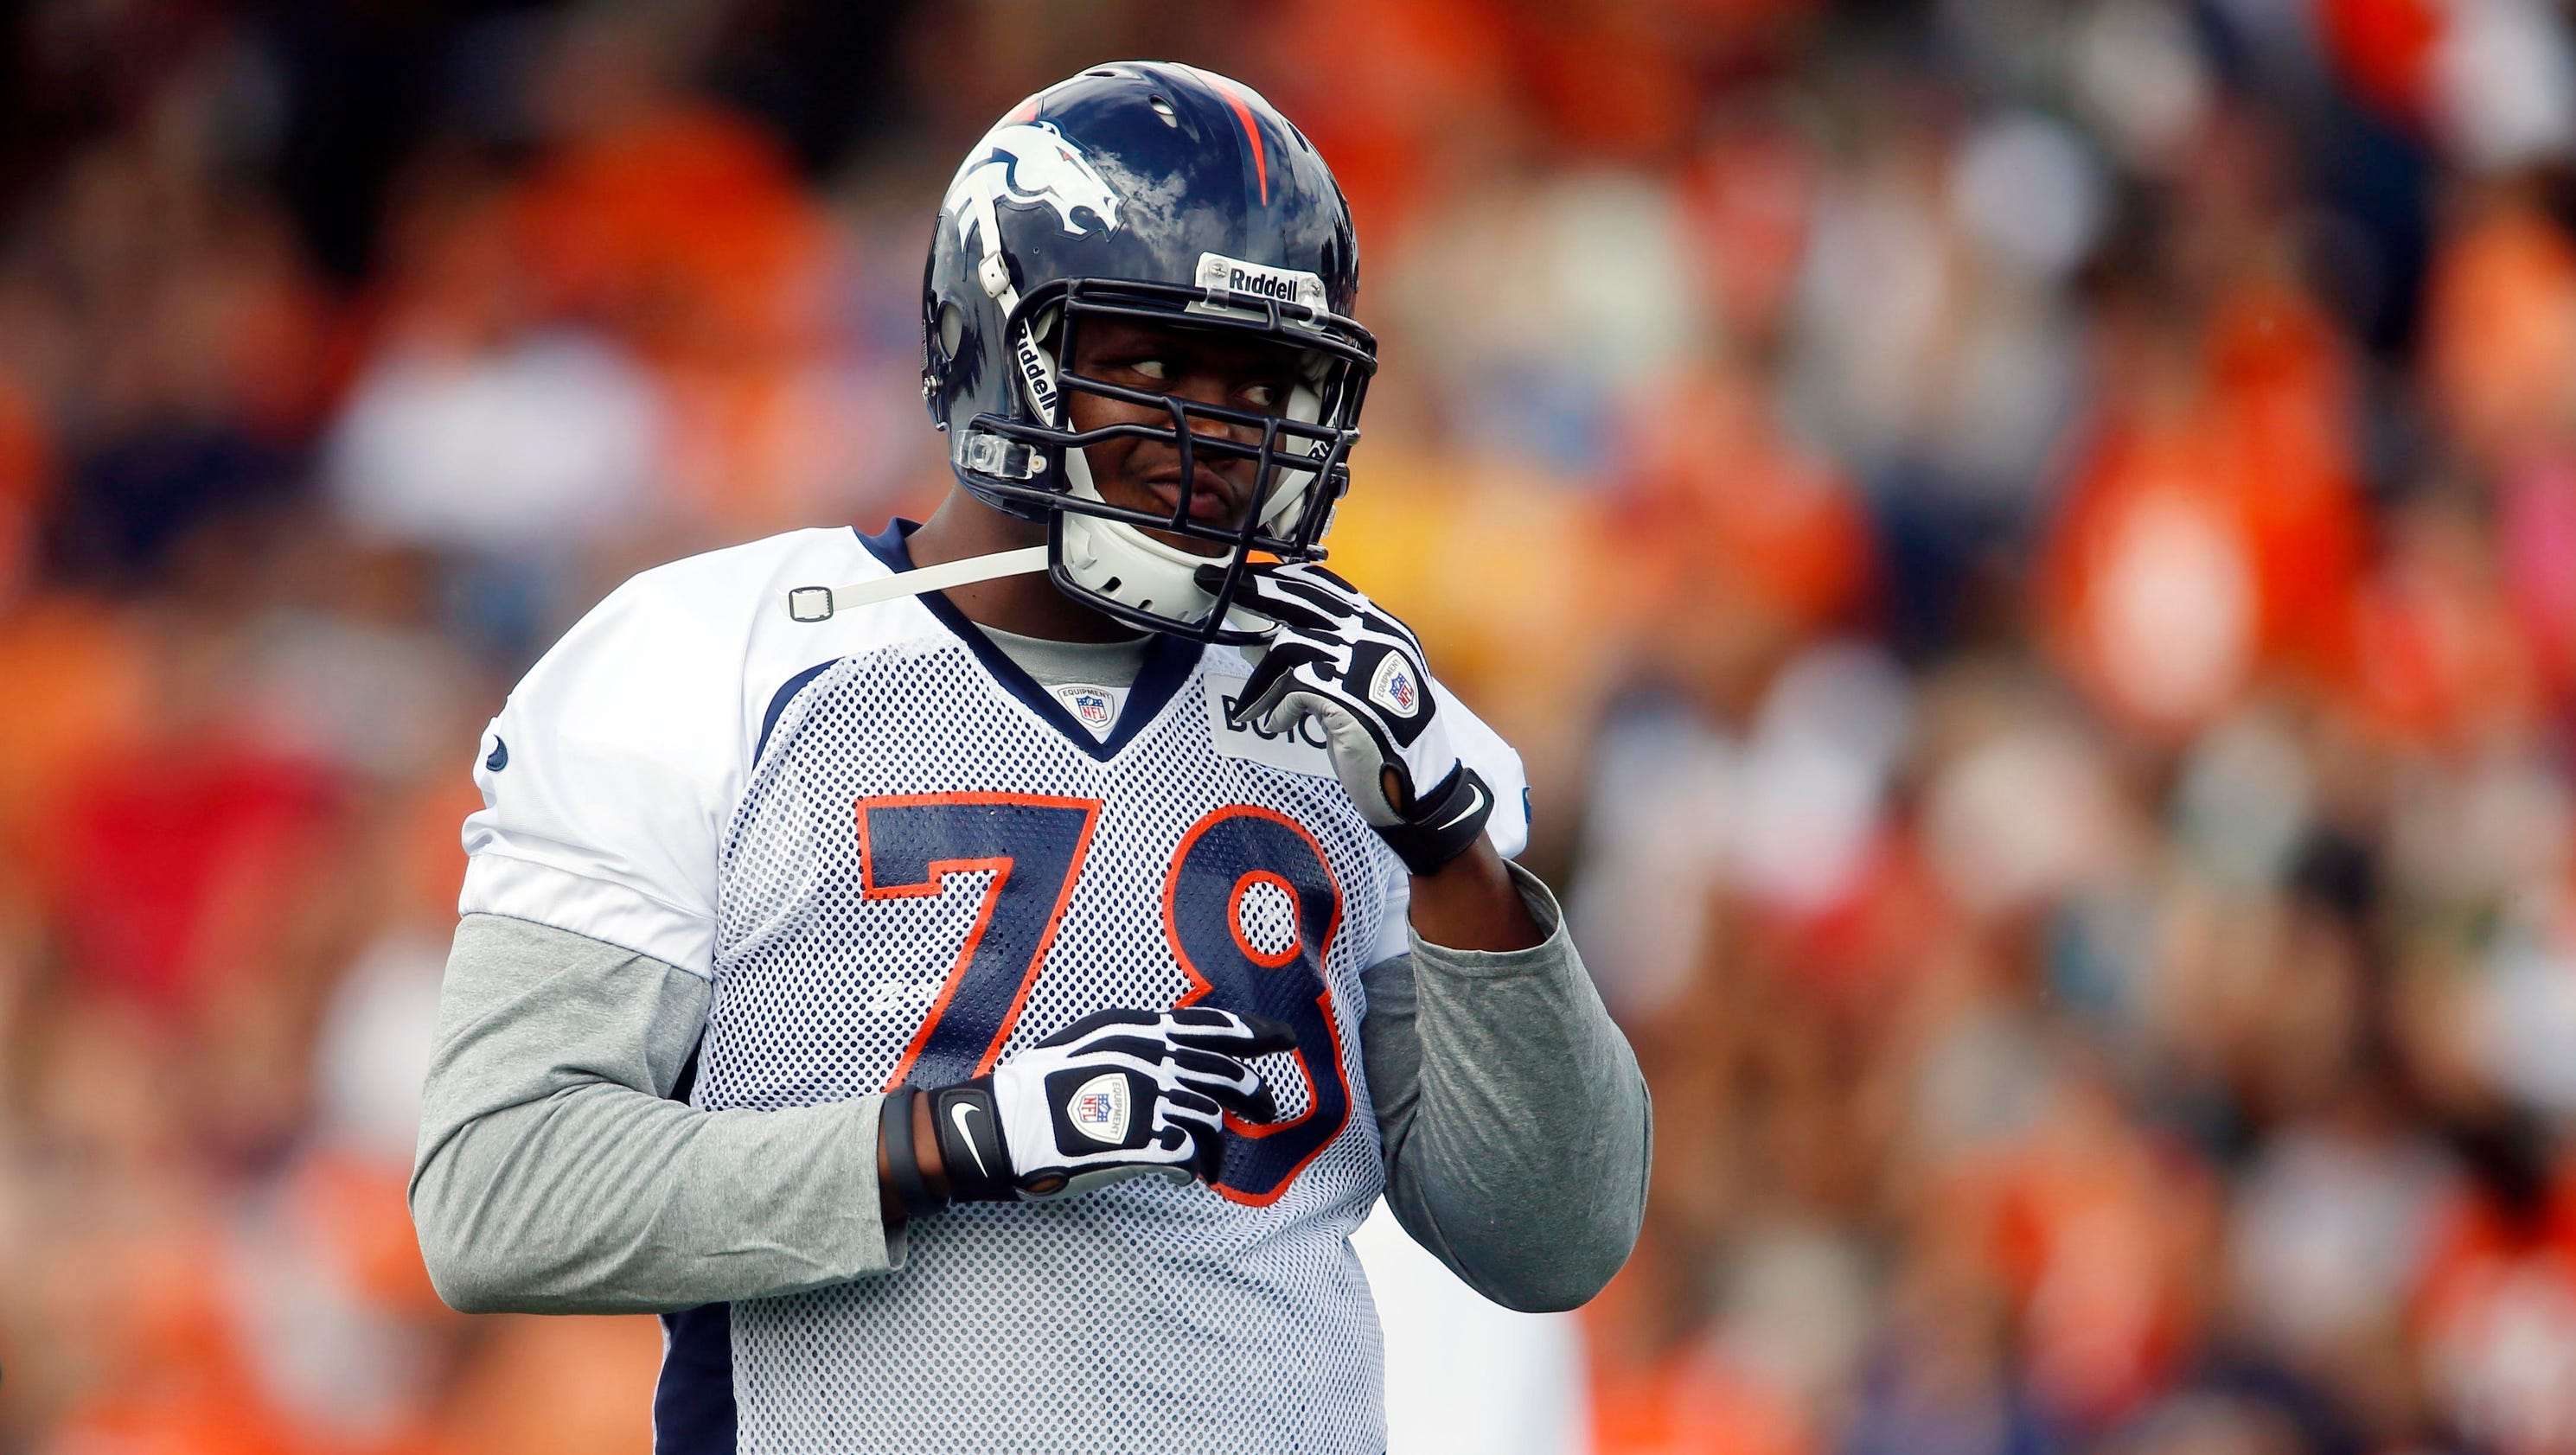 Jets acquire four-time Pro Bowl OT Ryan Clady from Broncos